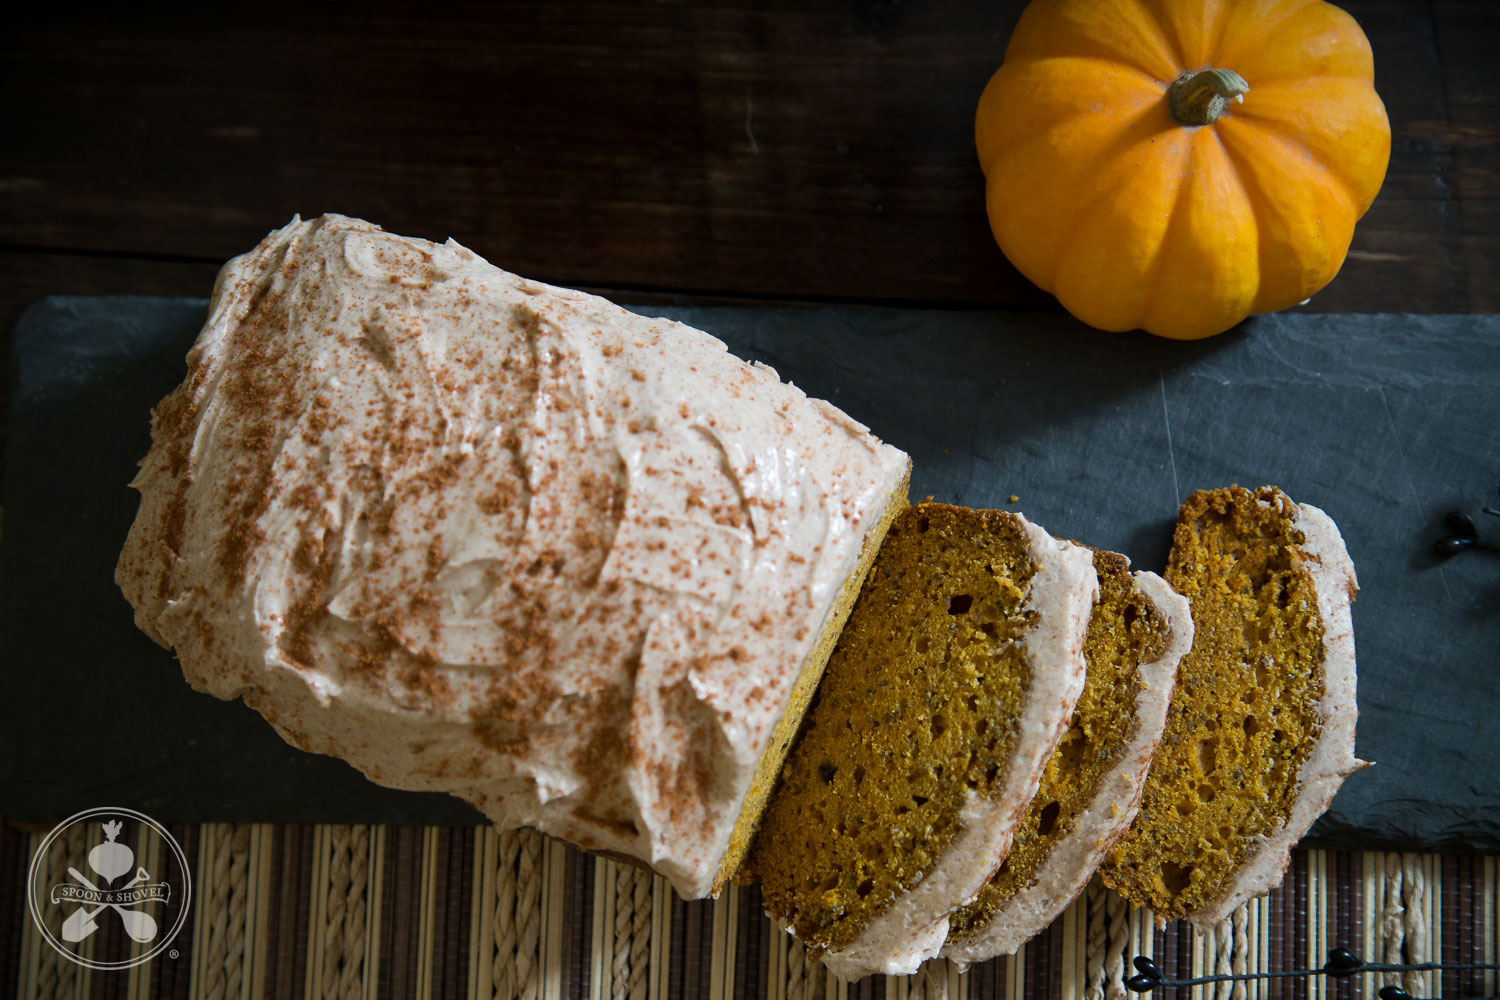 Cinnamon-frosted vegan pumpkin bread from The Spoon + Shovel